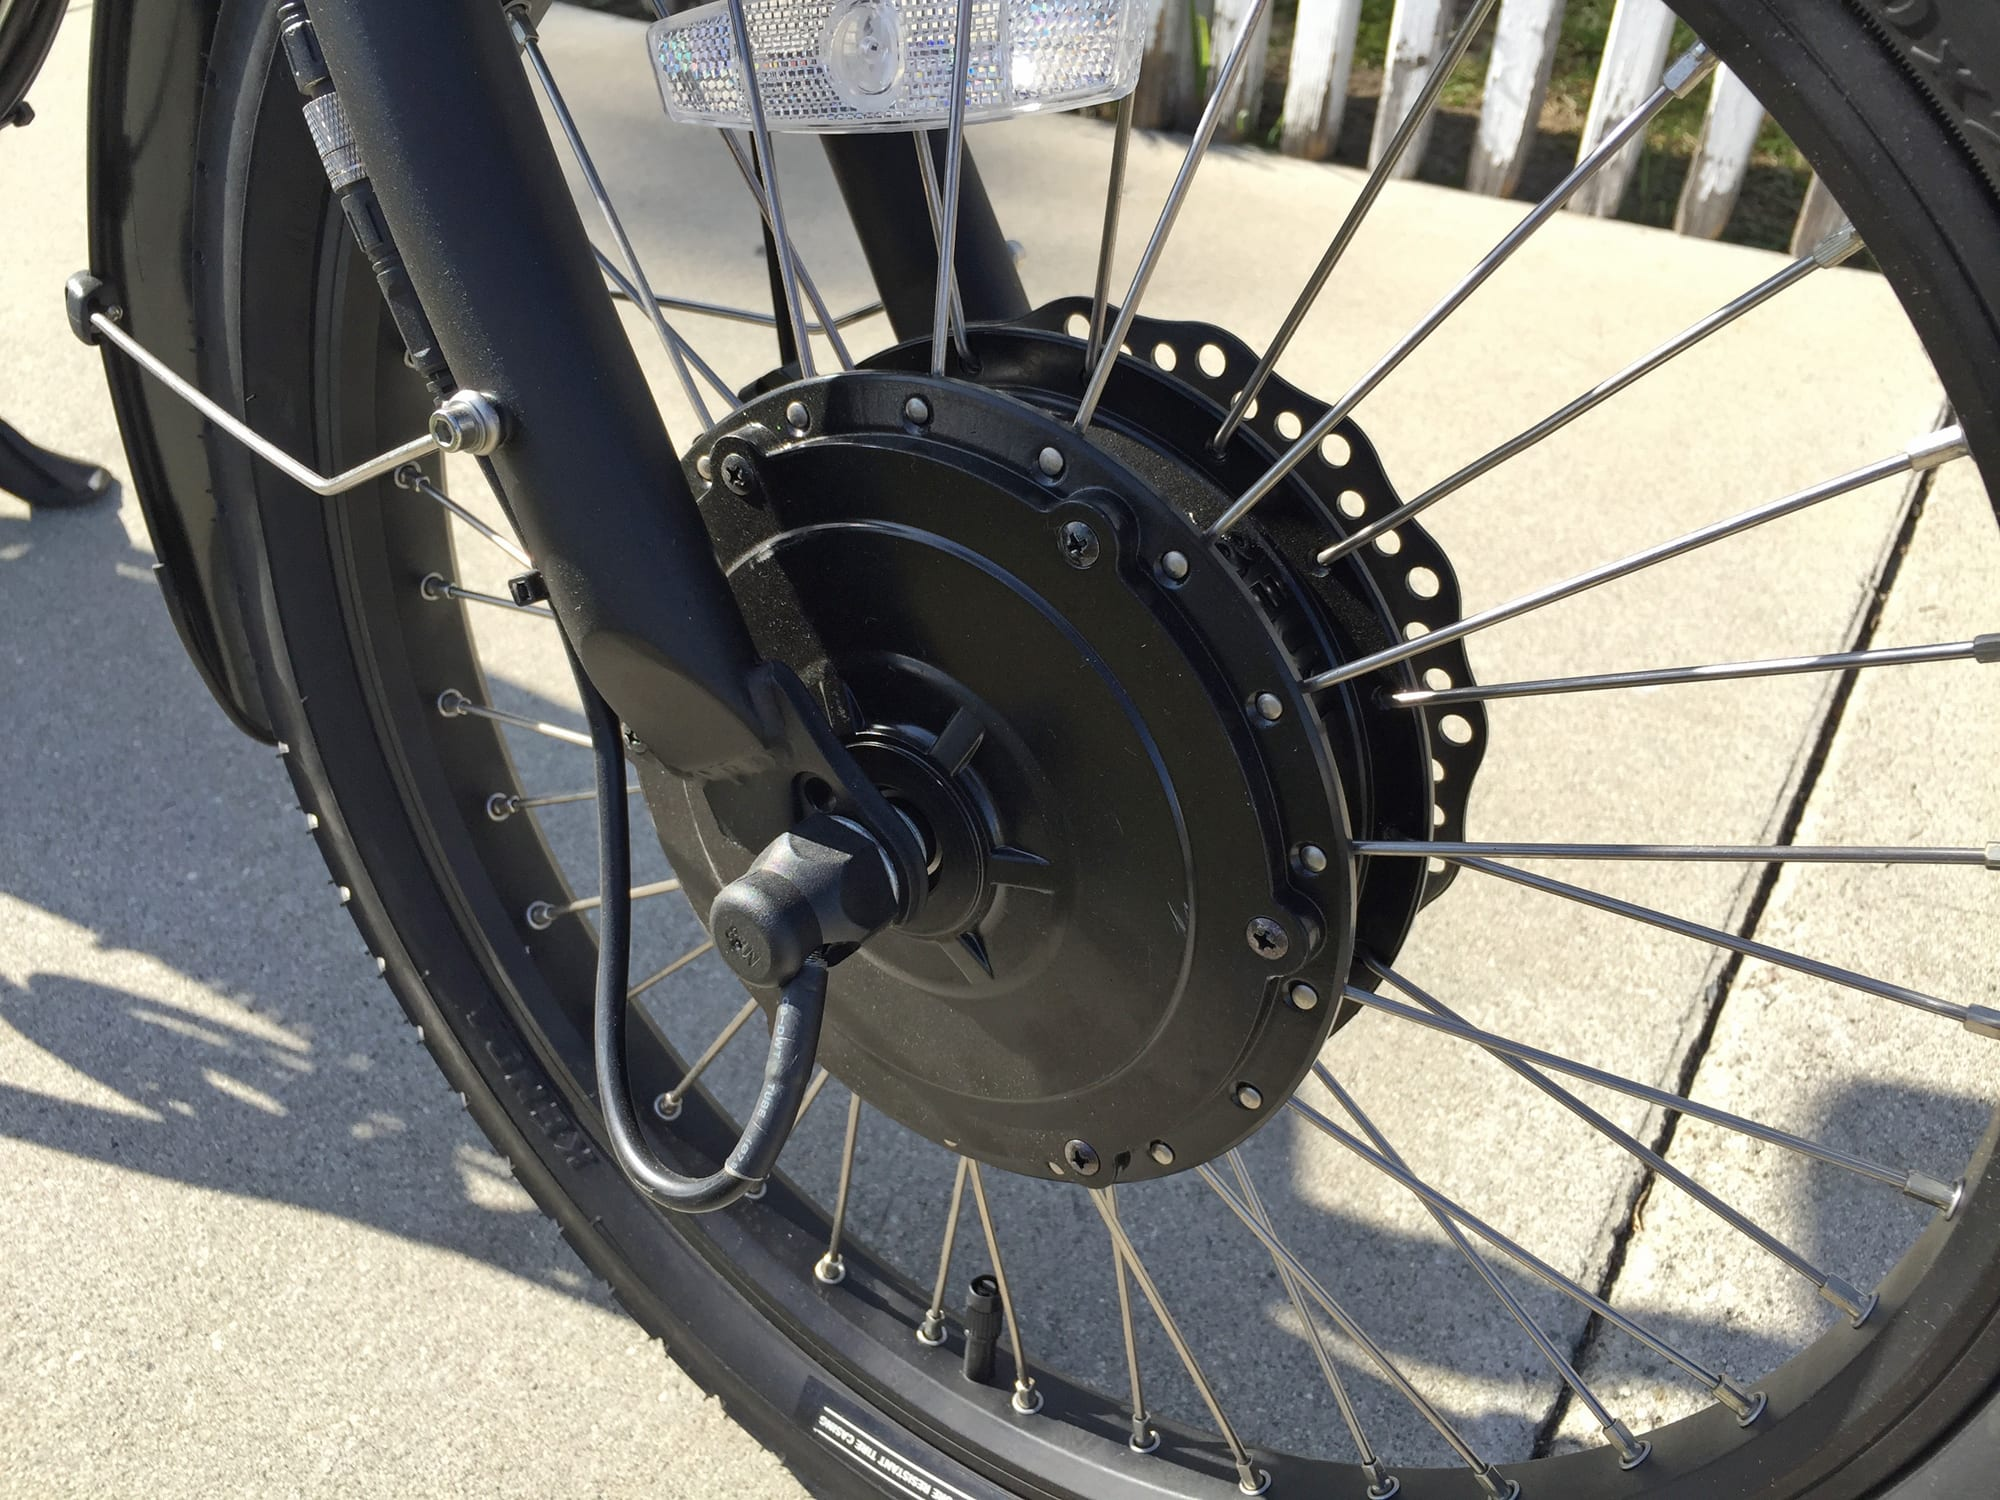 Bafang BPM hub motor replacement gear and clutch set Juiced U500 V3 and others